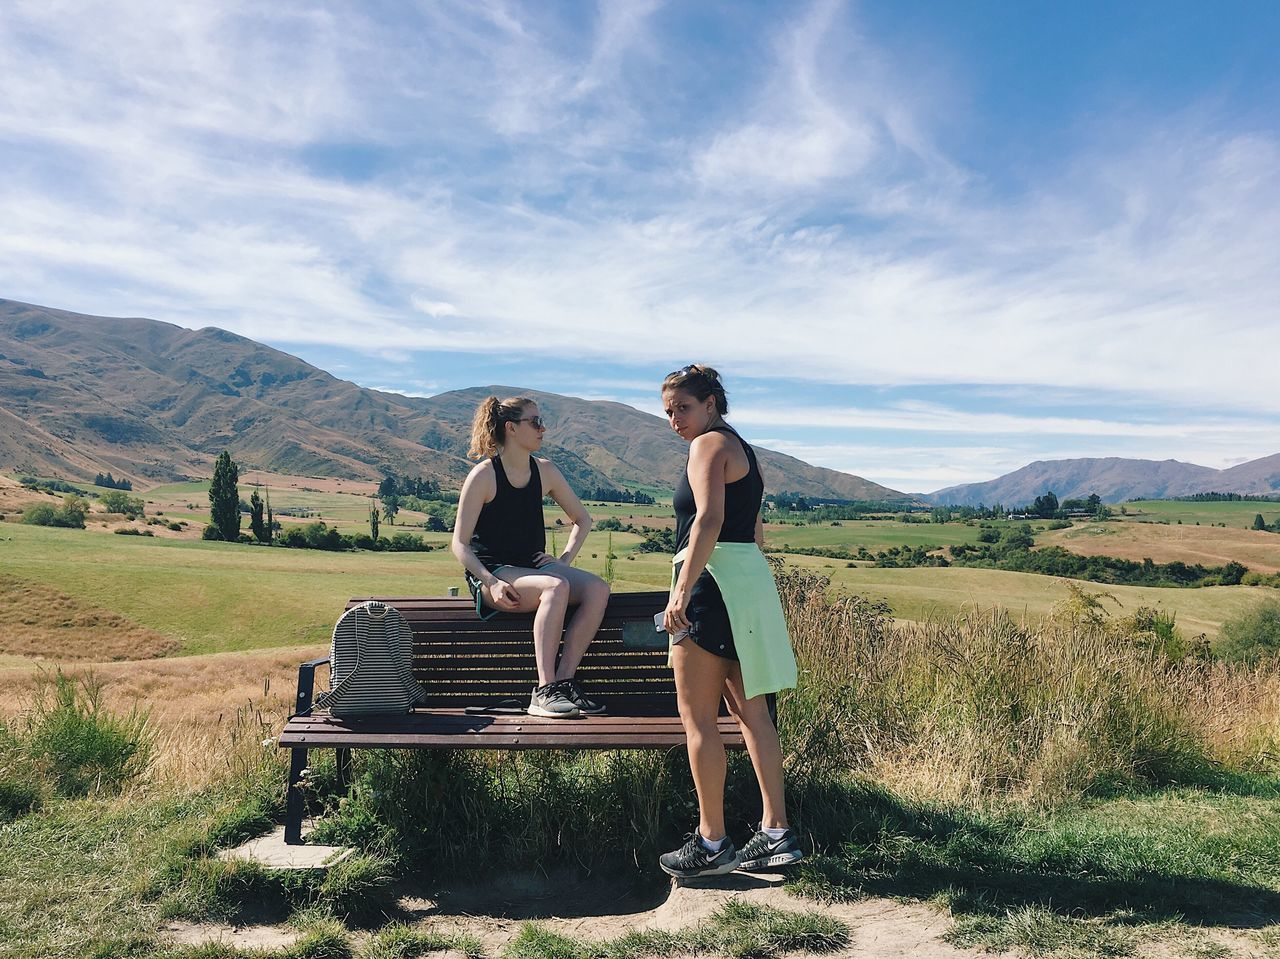 Women Exercise Hiking Fitness Nature Two People Full Length Scenics Leisure Activity Rural Scene Beauty In Nature Landscape Non-urban Scene